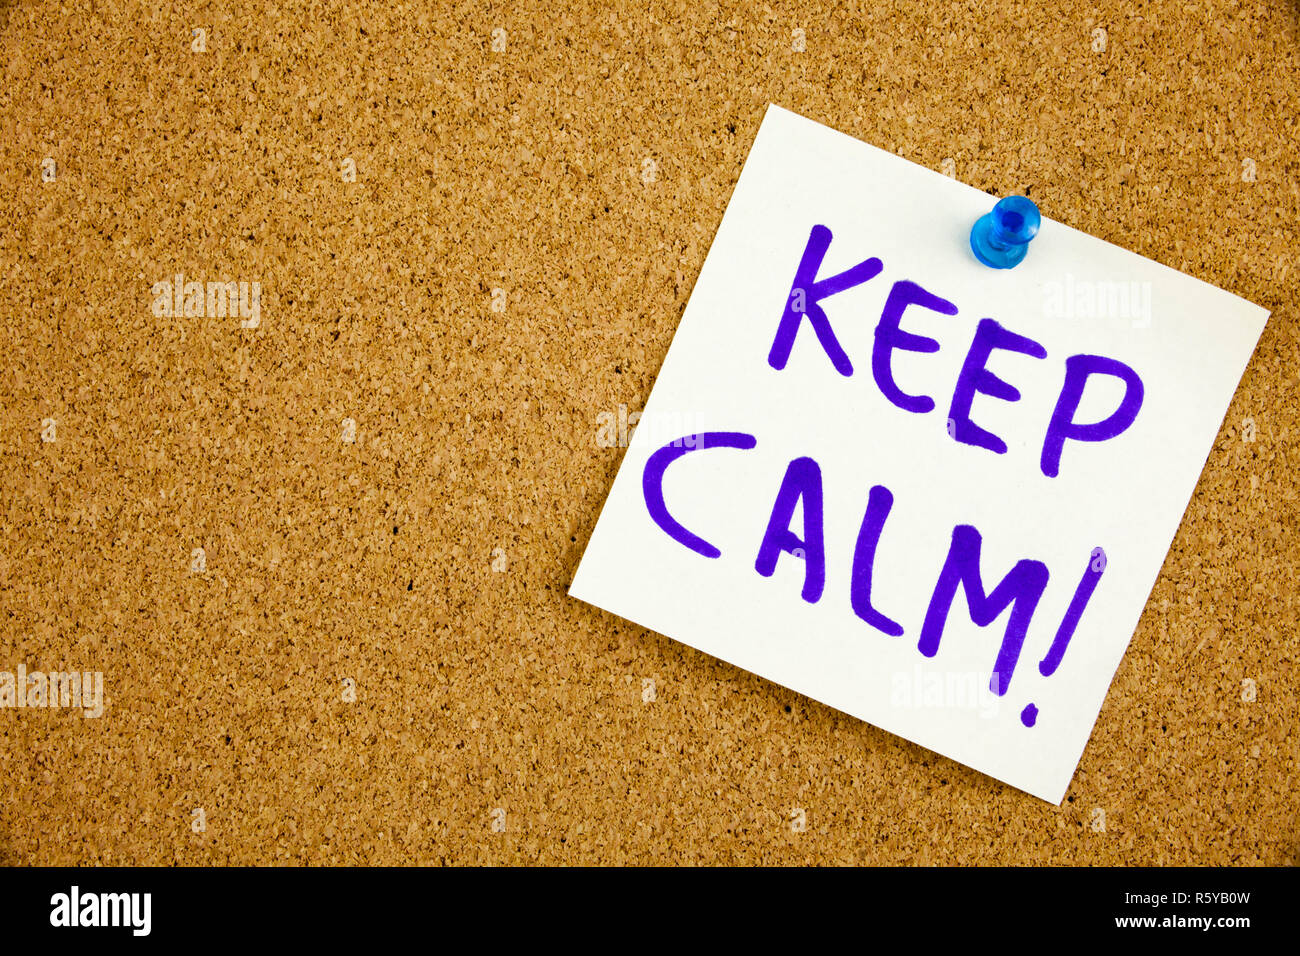 a yellow sticky note writing caption inscription keep calm reminder or advice on a